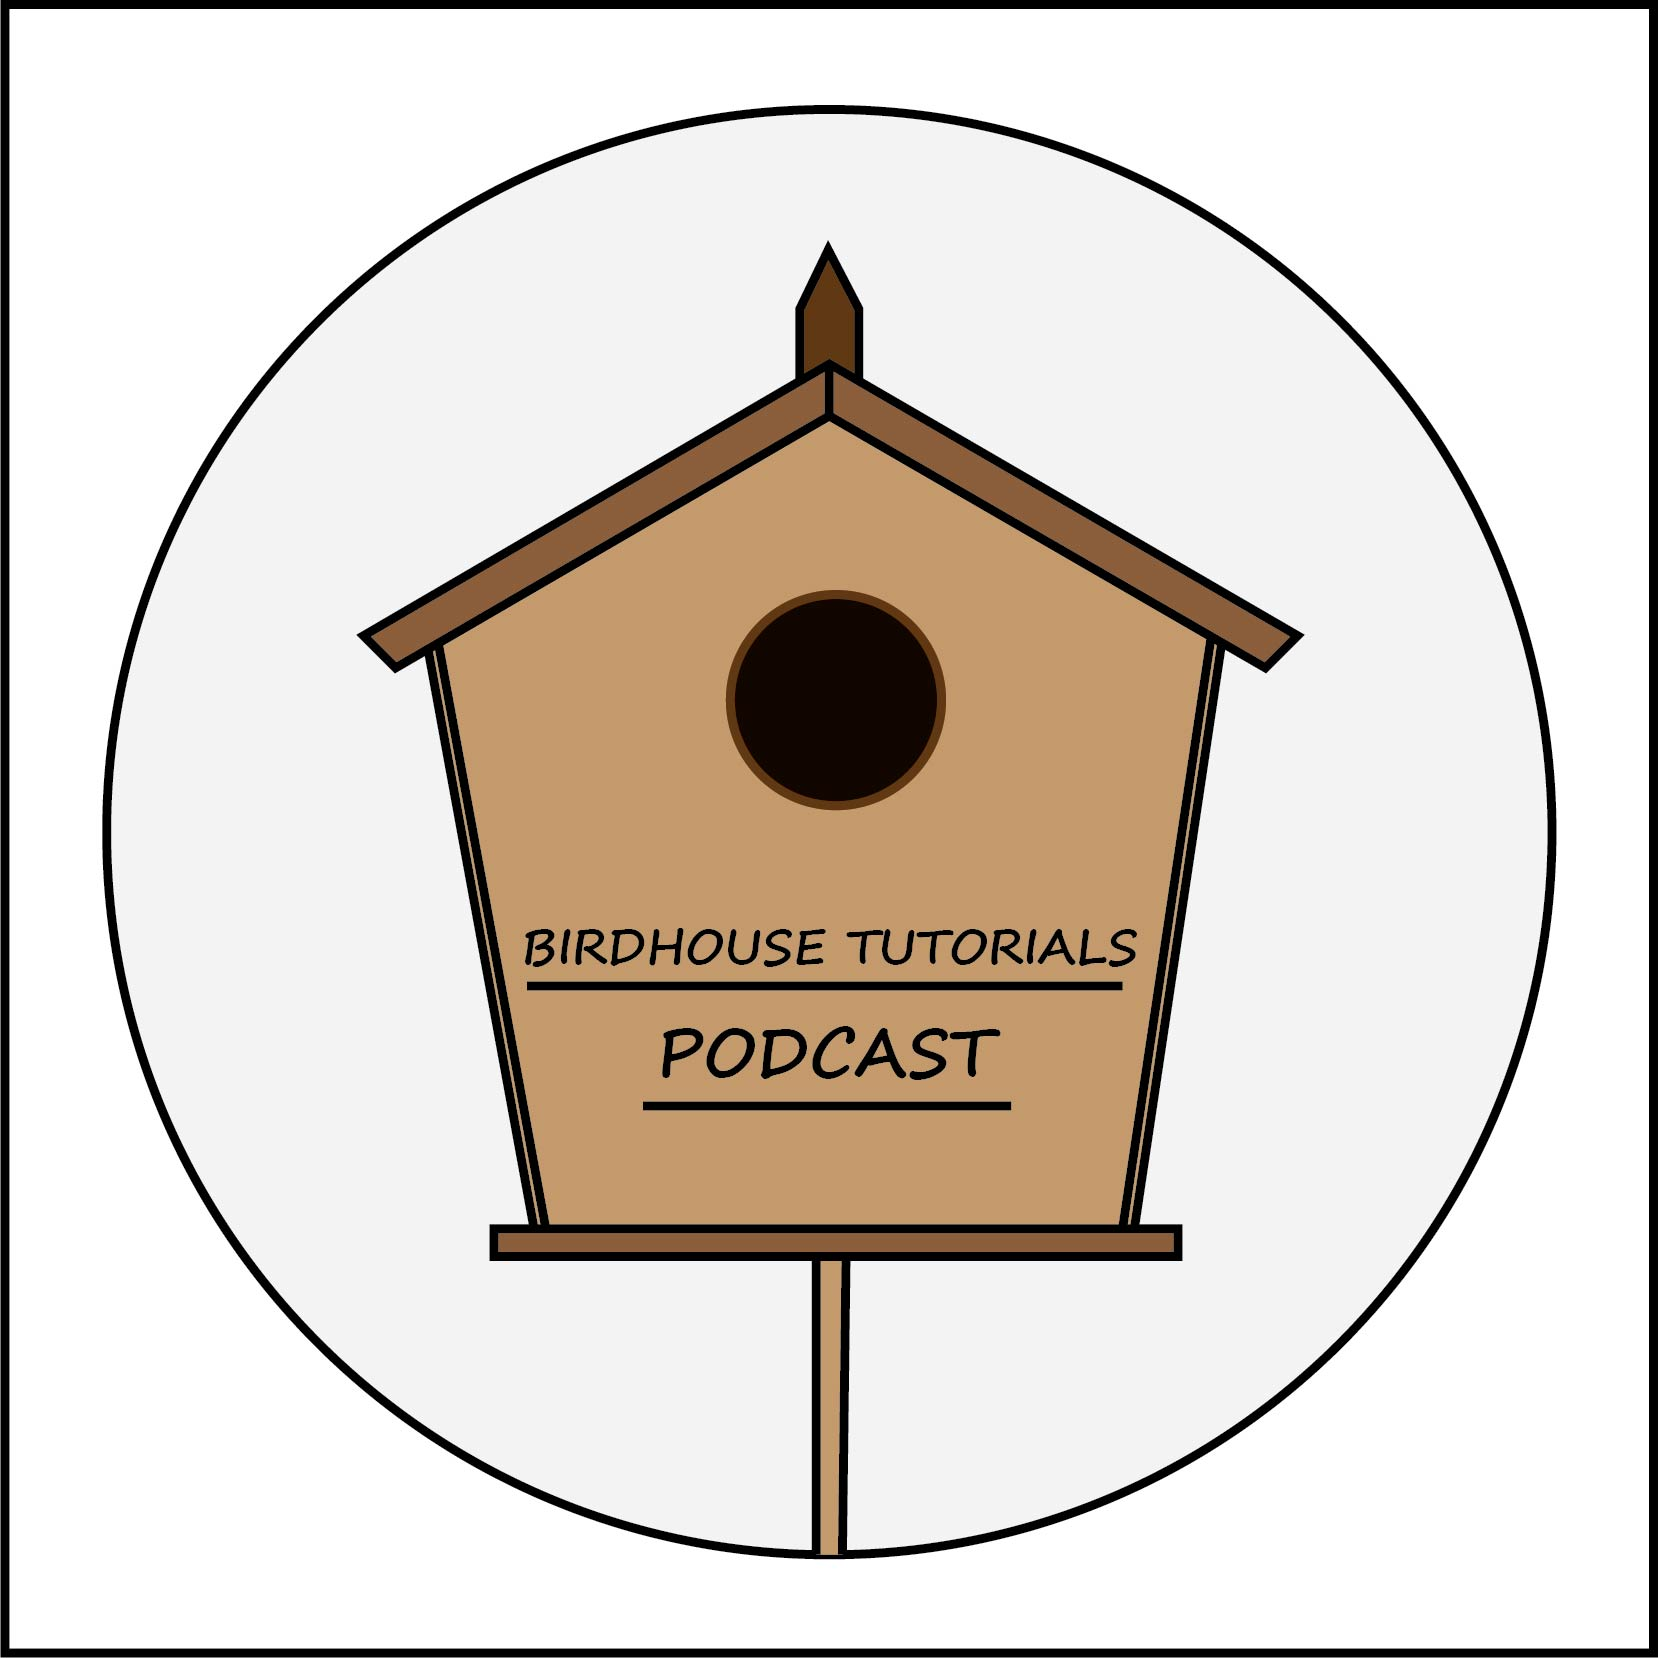 Birdhouse Tutorials Podcast